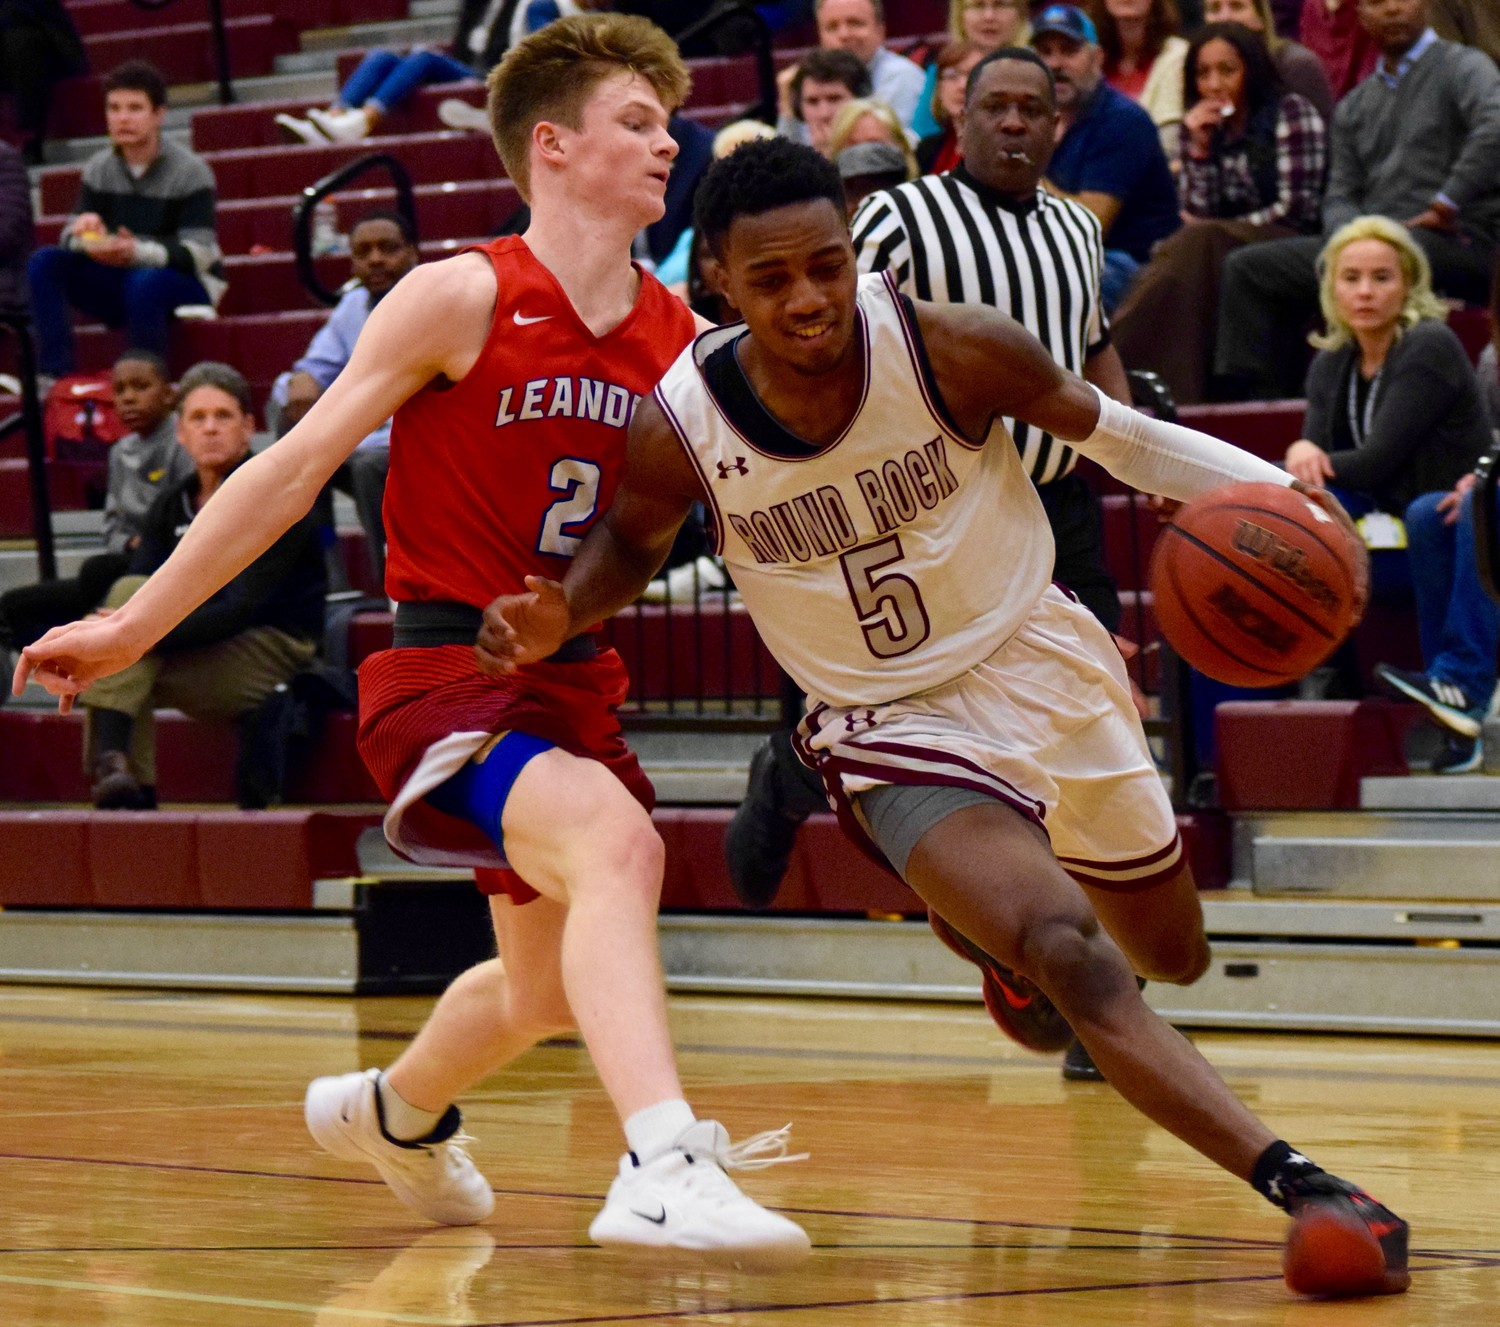 Ryan Ward and Round Rock lost to Leander 45-38 on Tuesday night Round Rock High School.